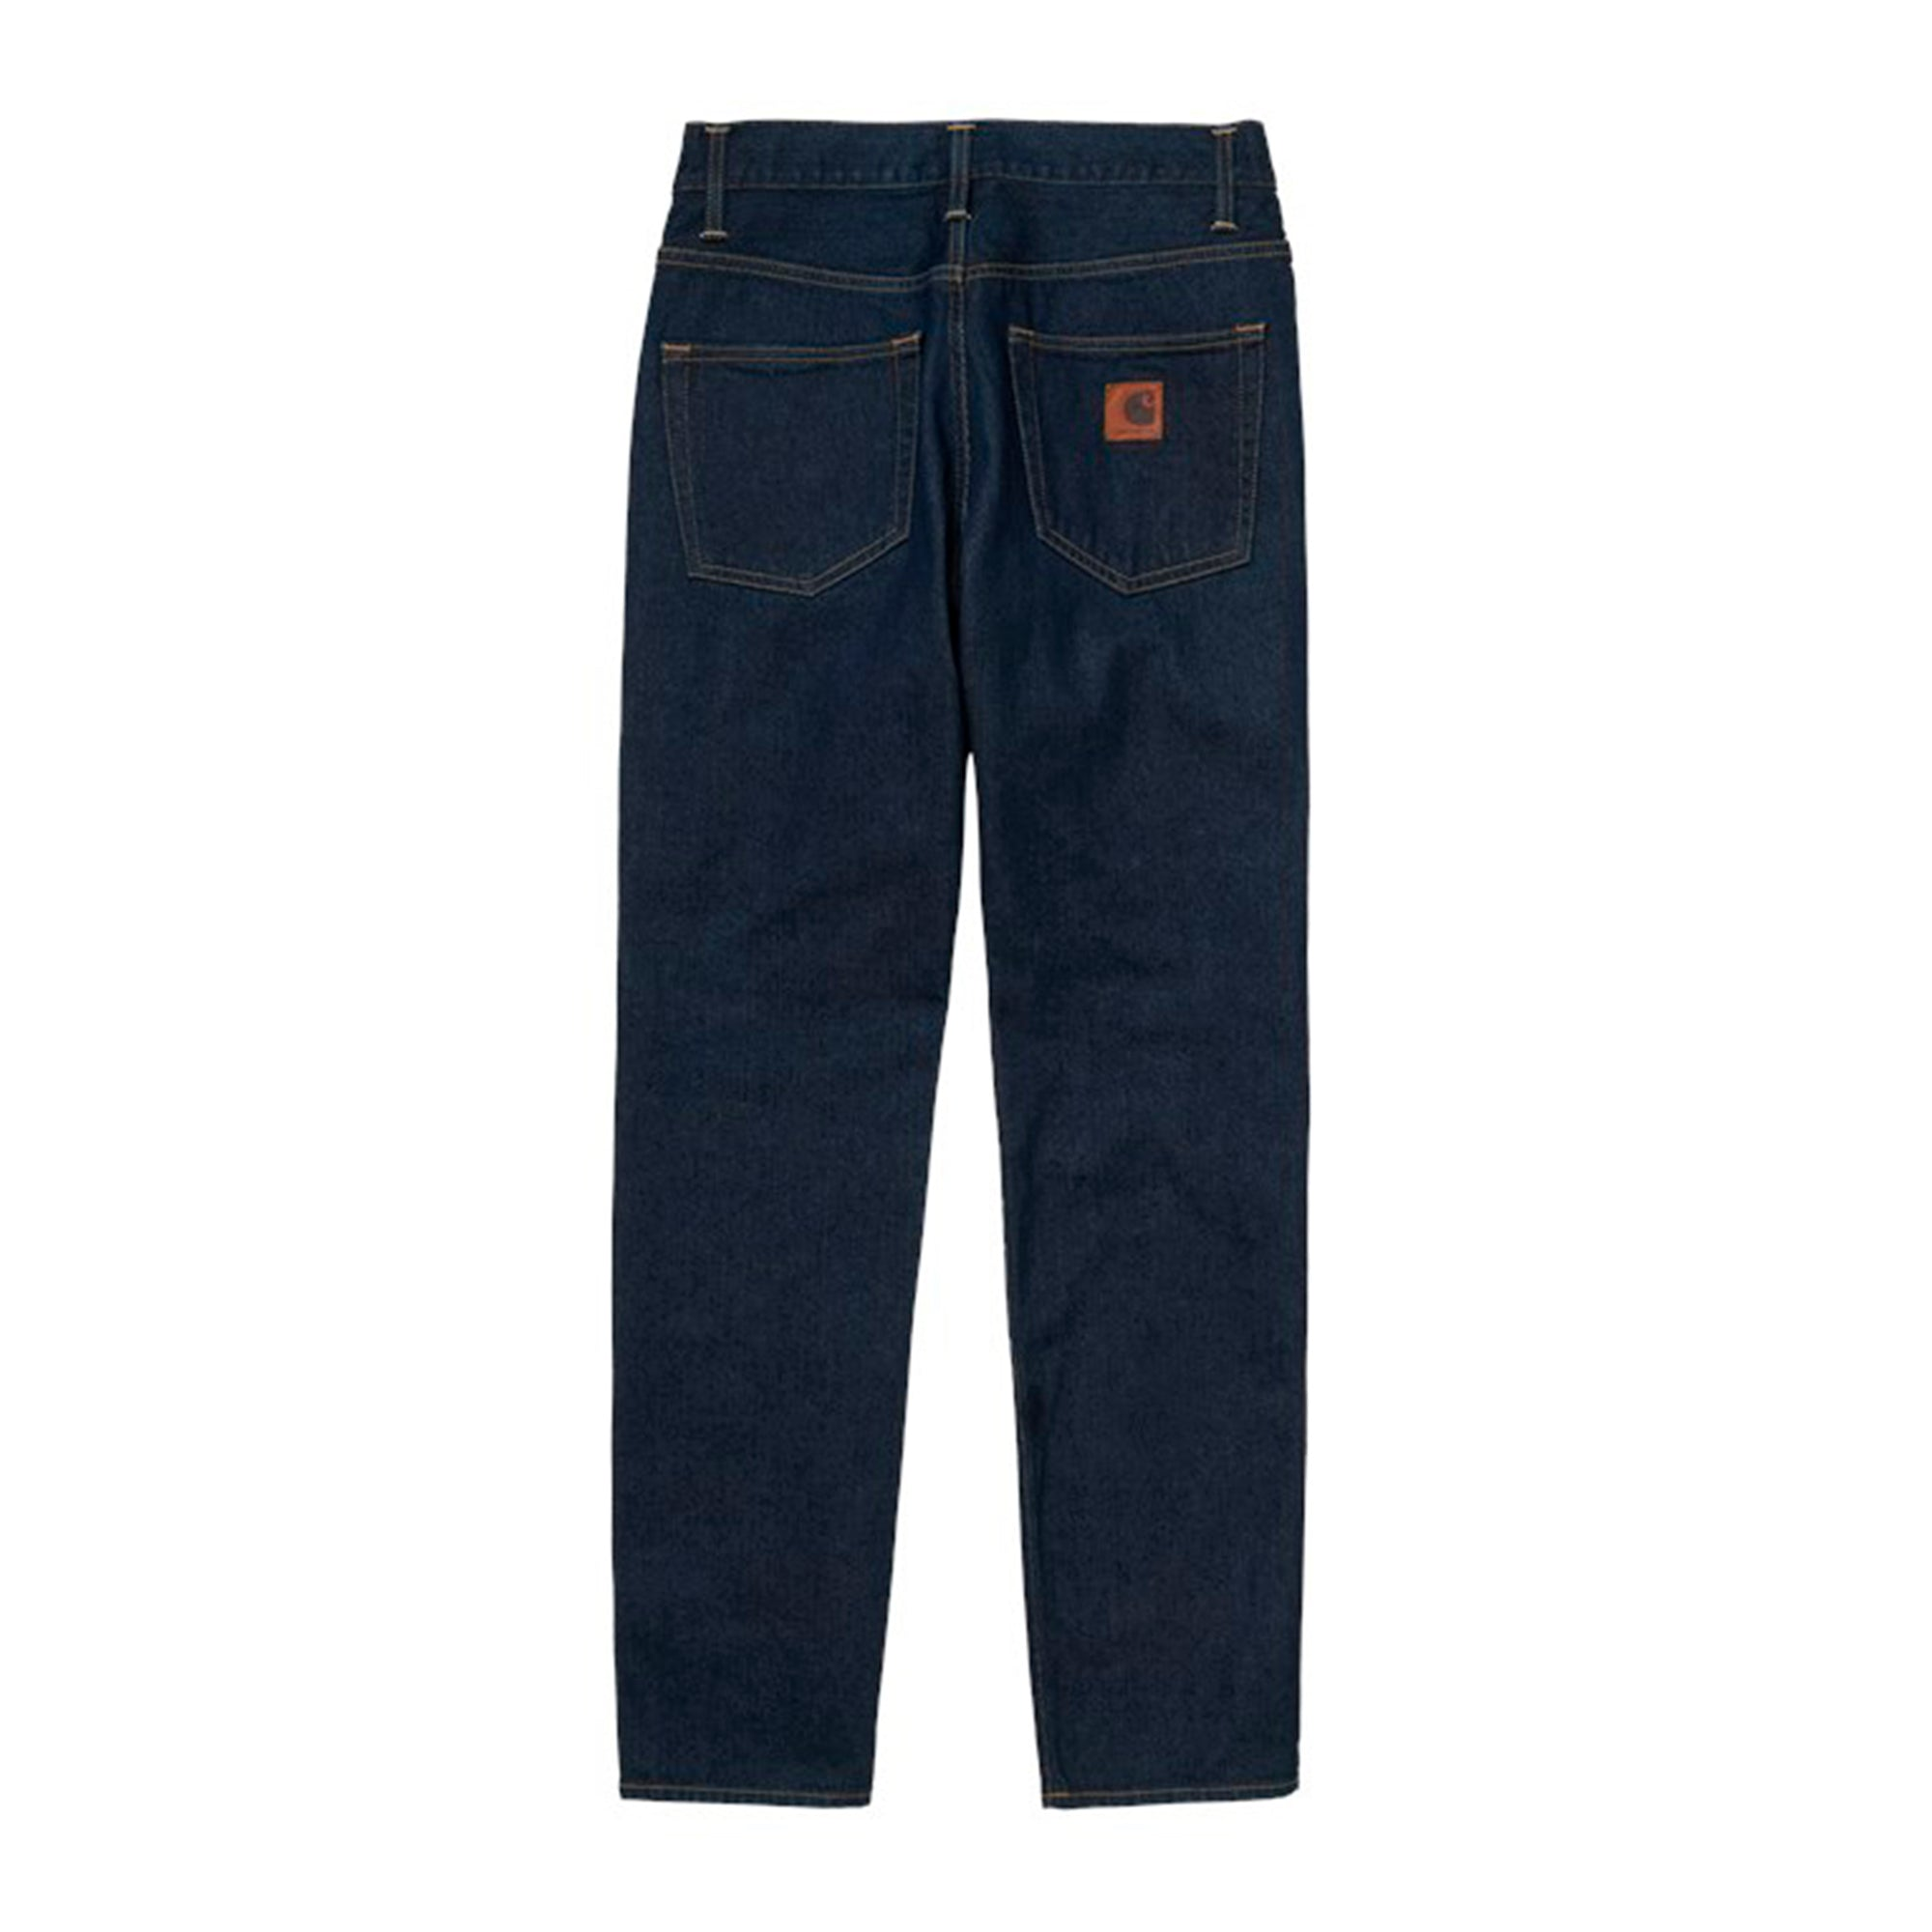 Carhartt WIP Klondike Pant: Blue Rinsed - The Union Project